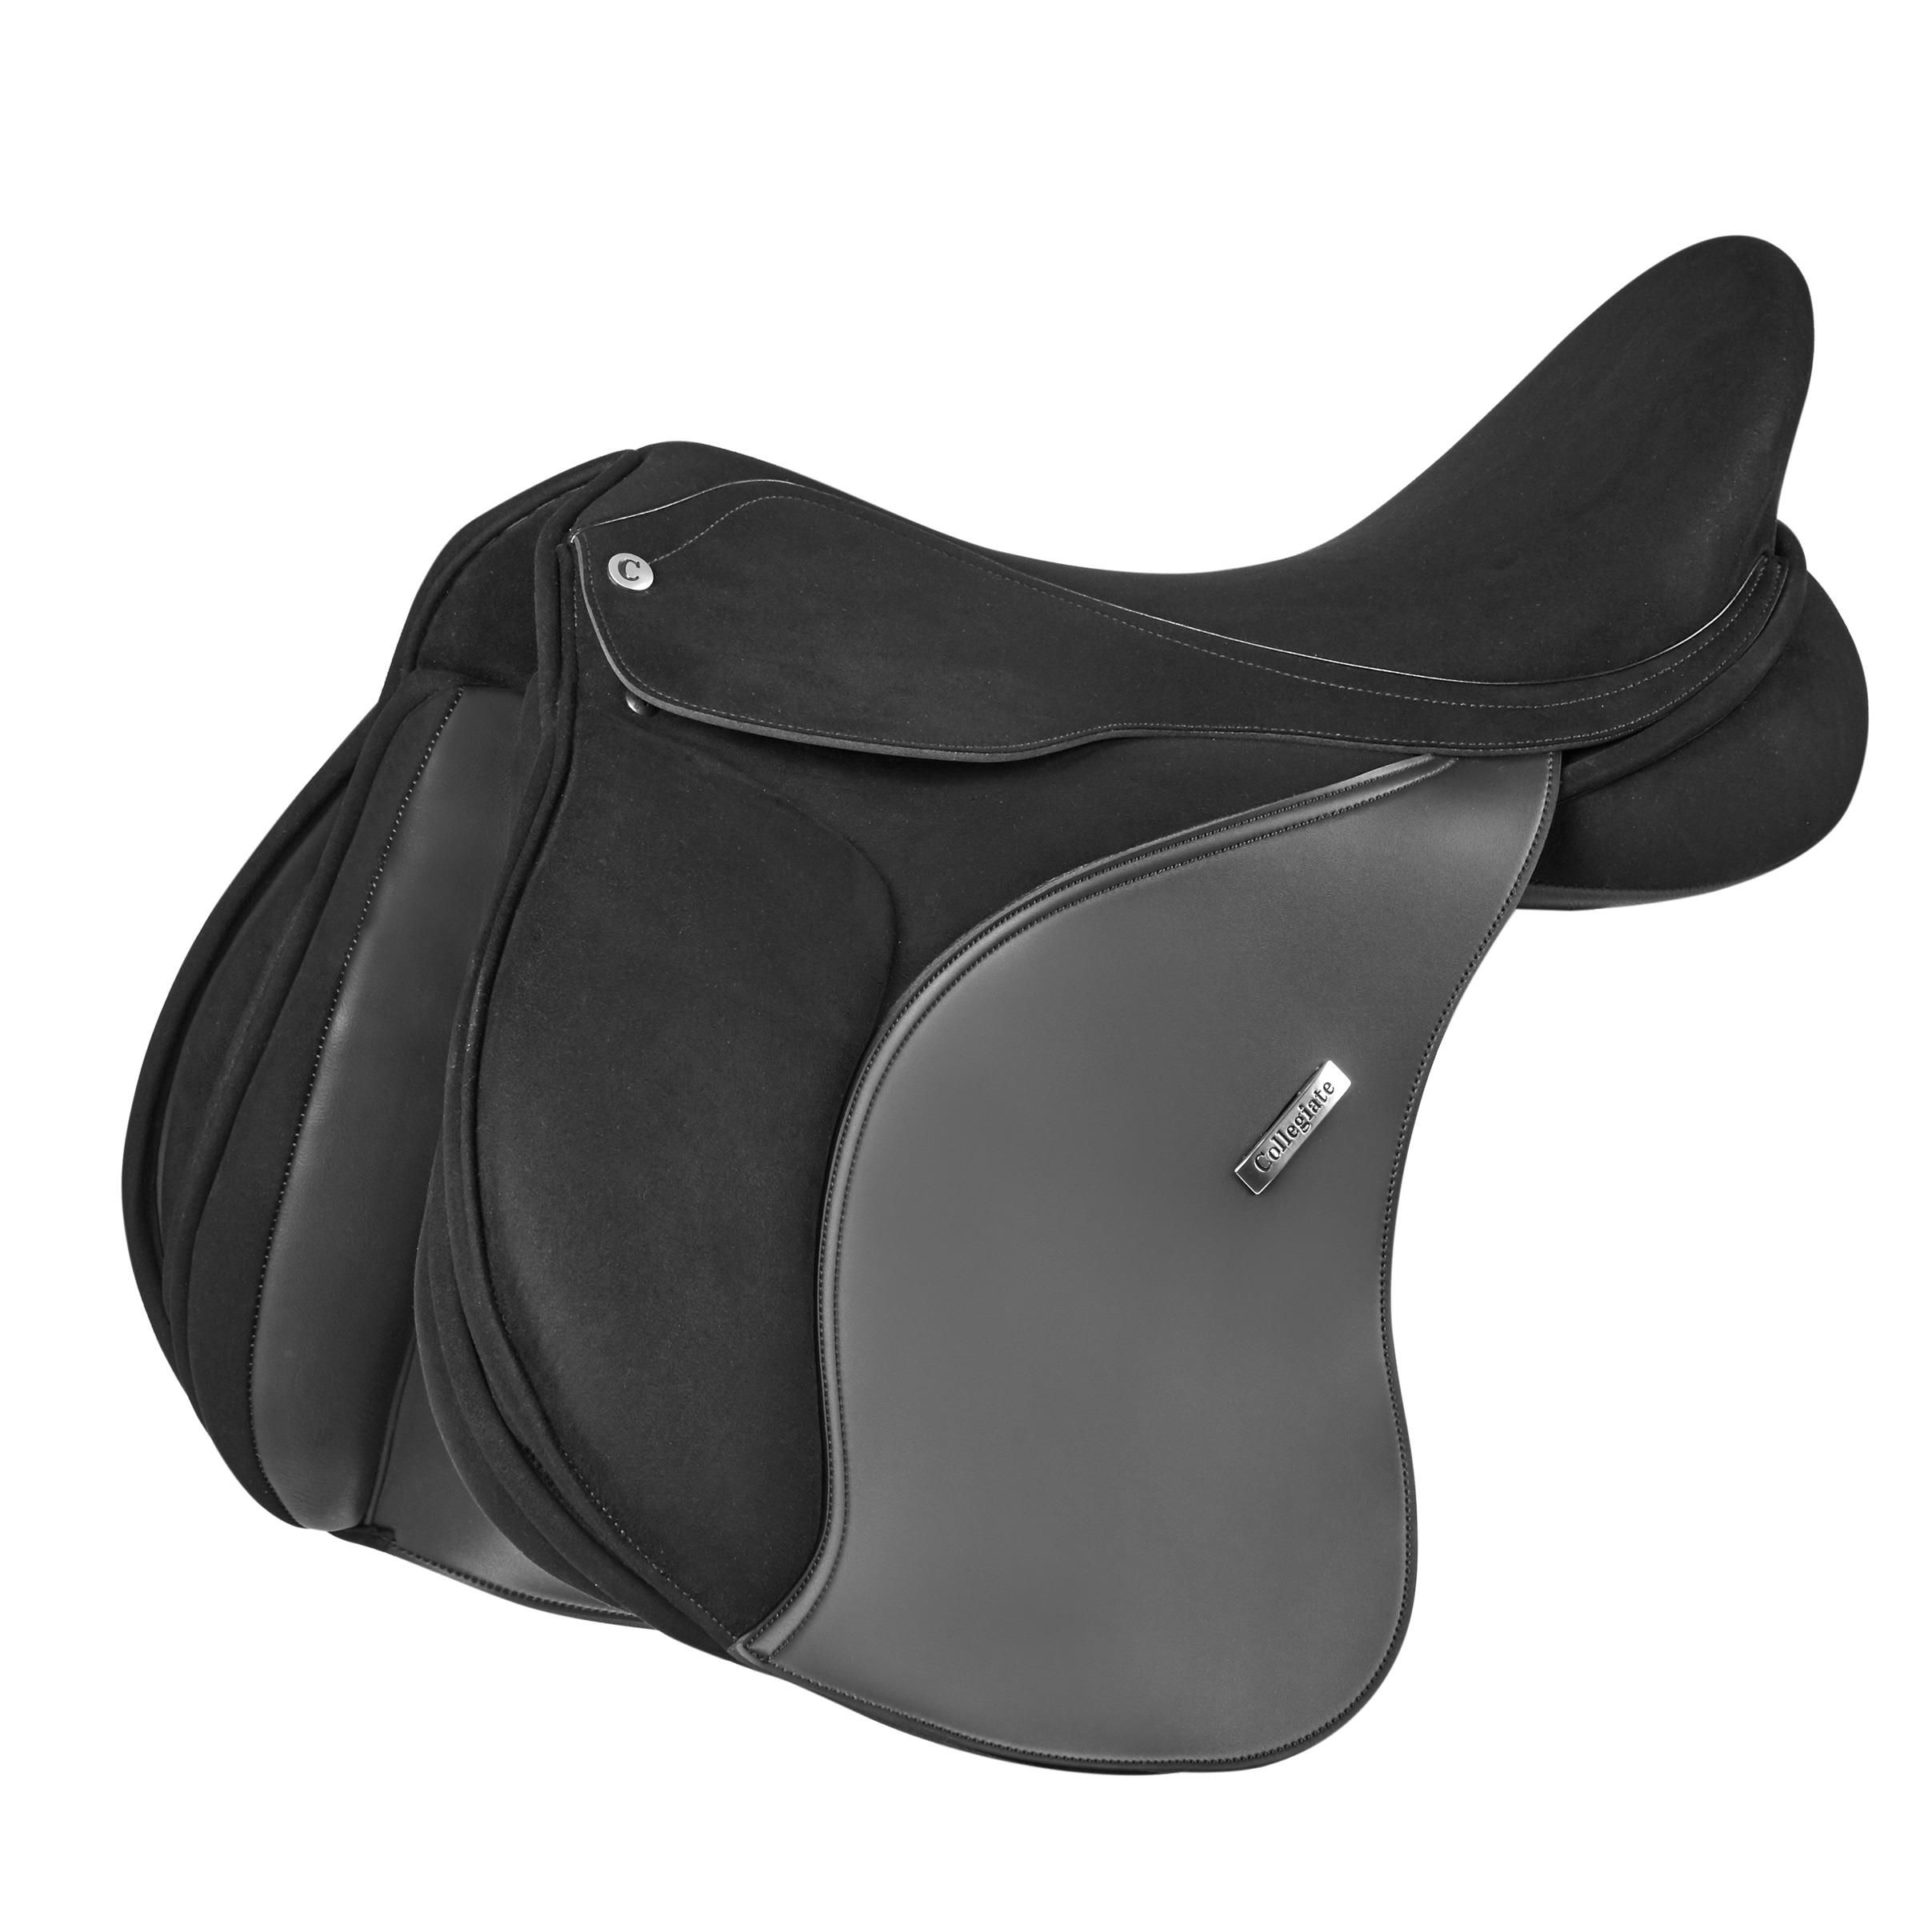 Collegiate Houghton Synthetic All-Purpose Saddle